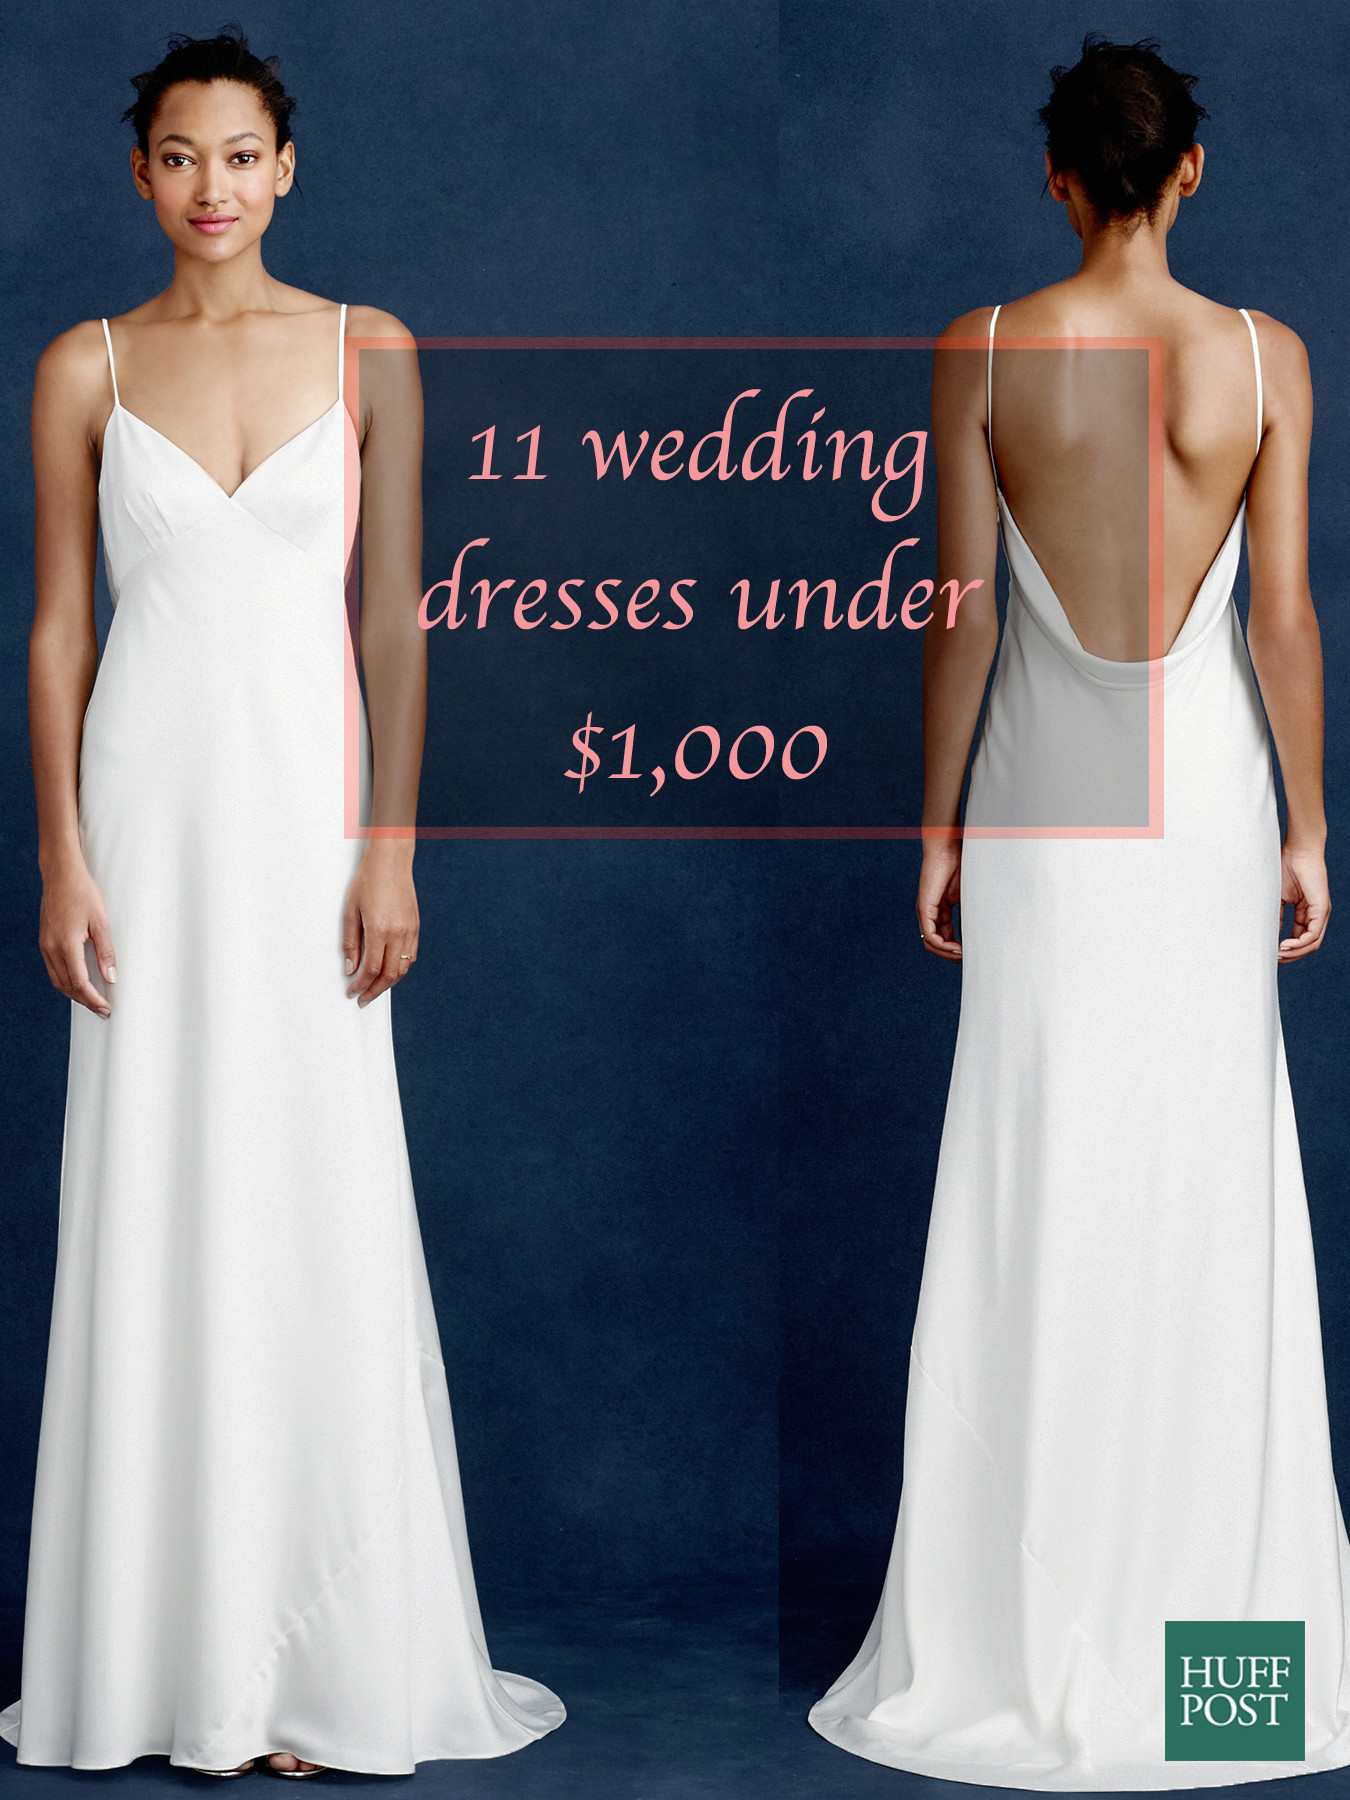 11 Wedding Dresses Under $1,000 | HuffPost